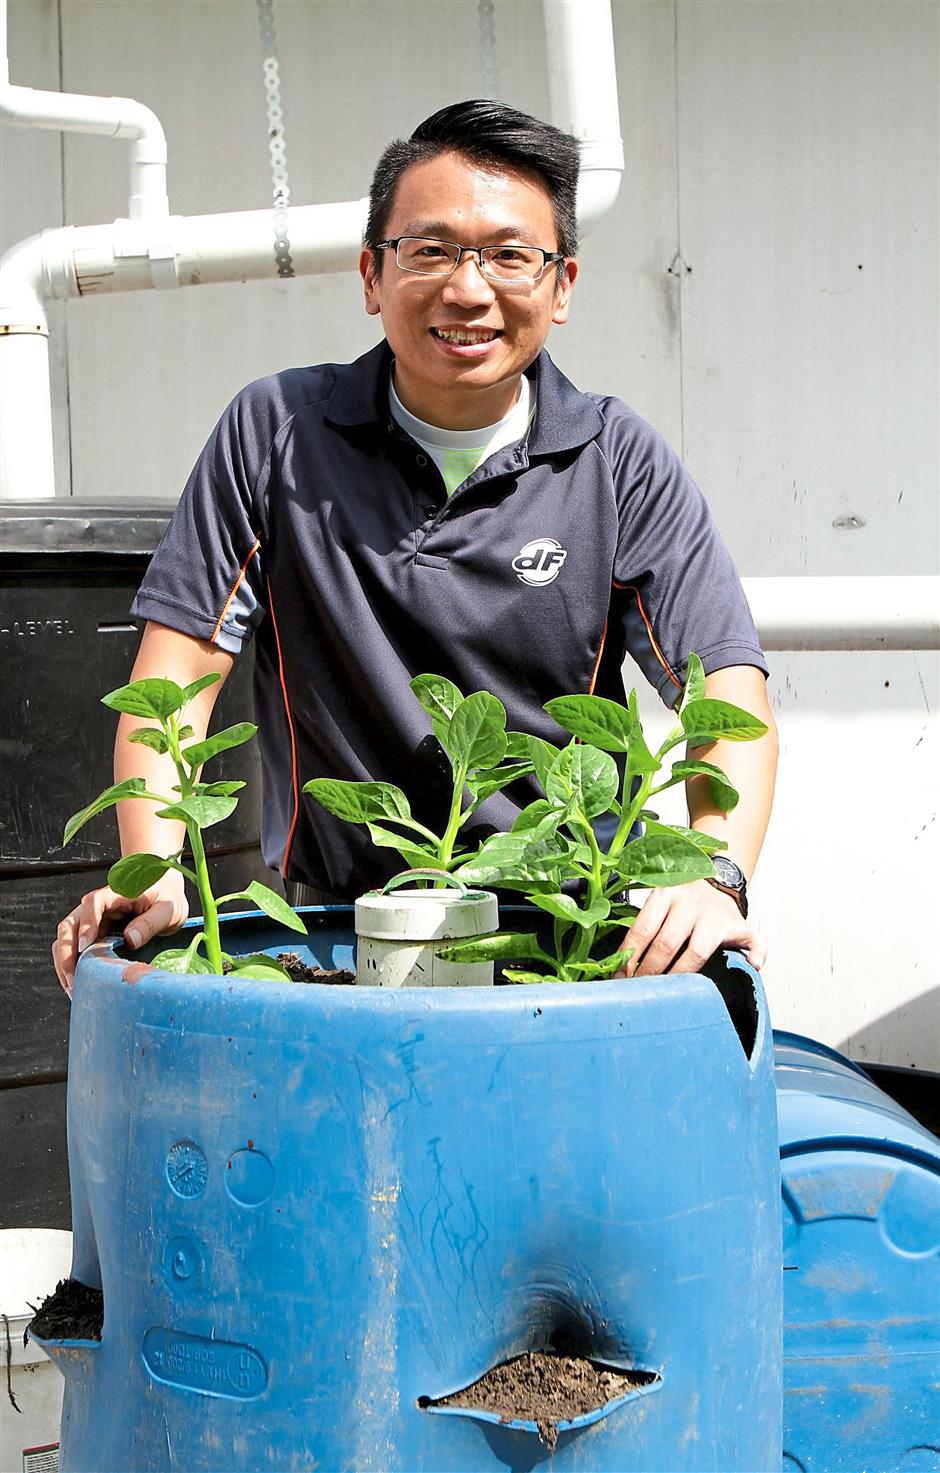 6 selangor urban farming association president jeff kong showing a sample of the drum in which vegetables and other crops could be grown.